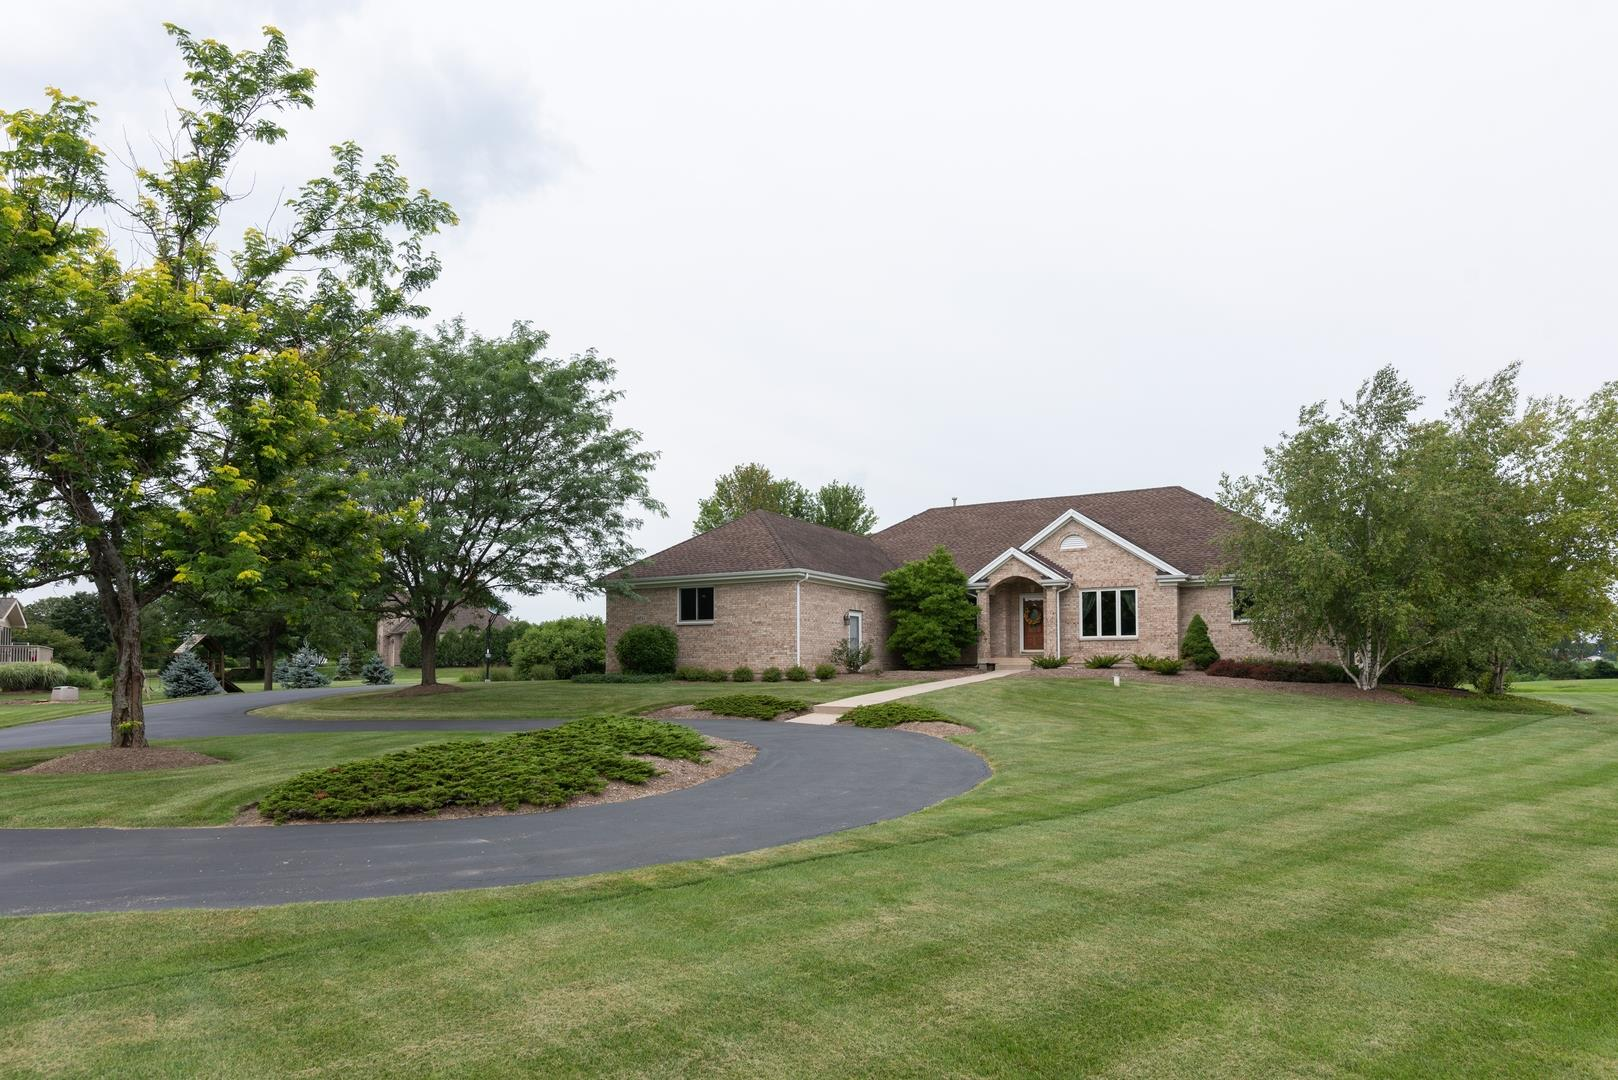 10711 Pebble Drive, Huntley, IL 60142 - #: 10785541